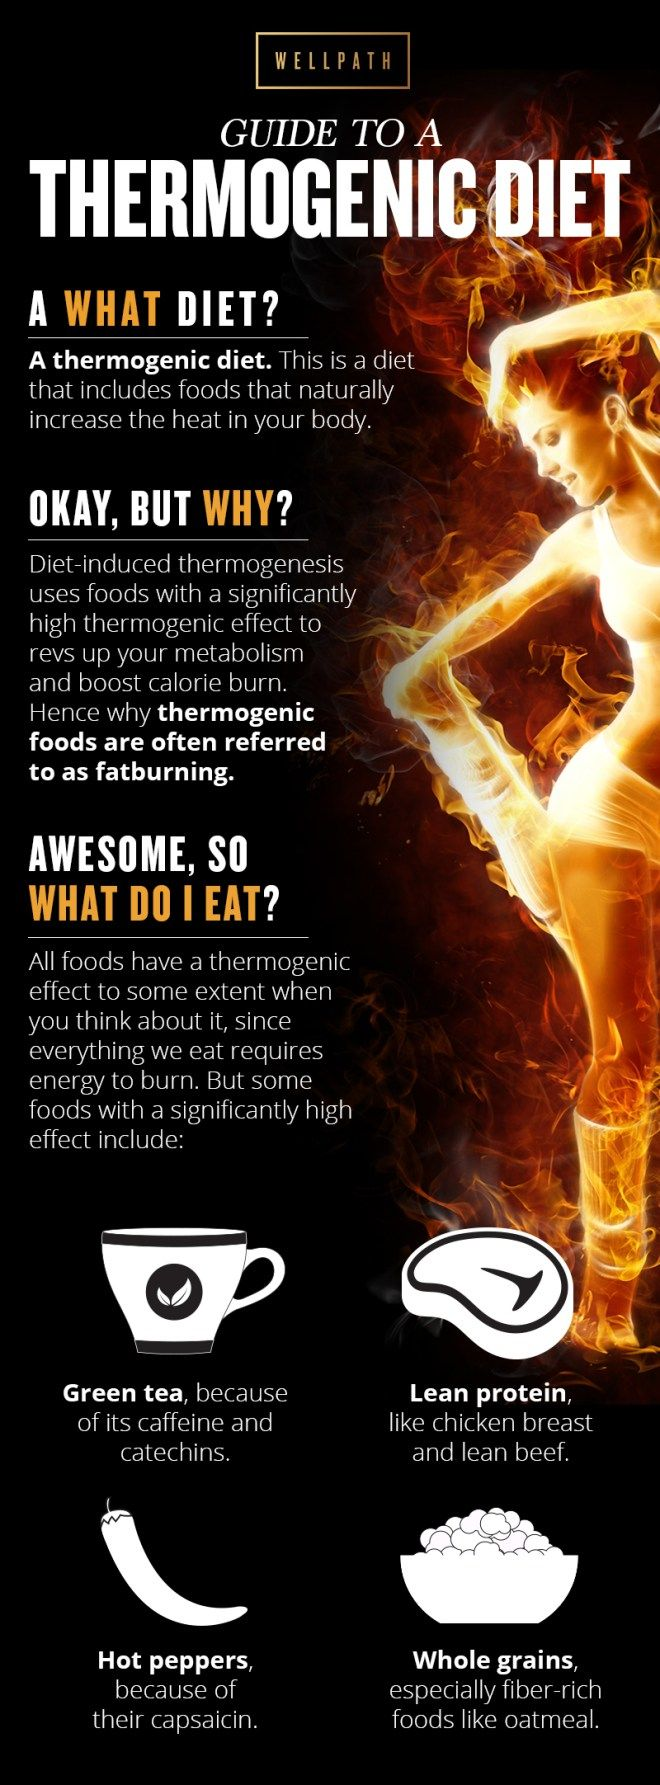 A thermogenic diet includes consuming foods that naturally